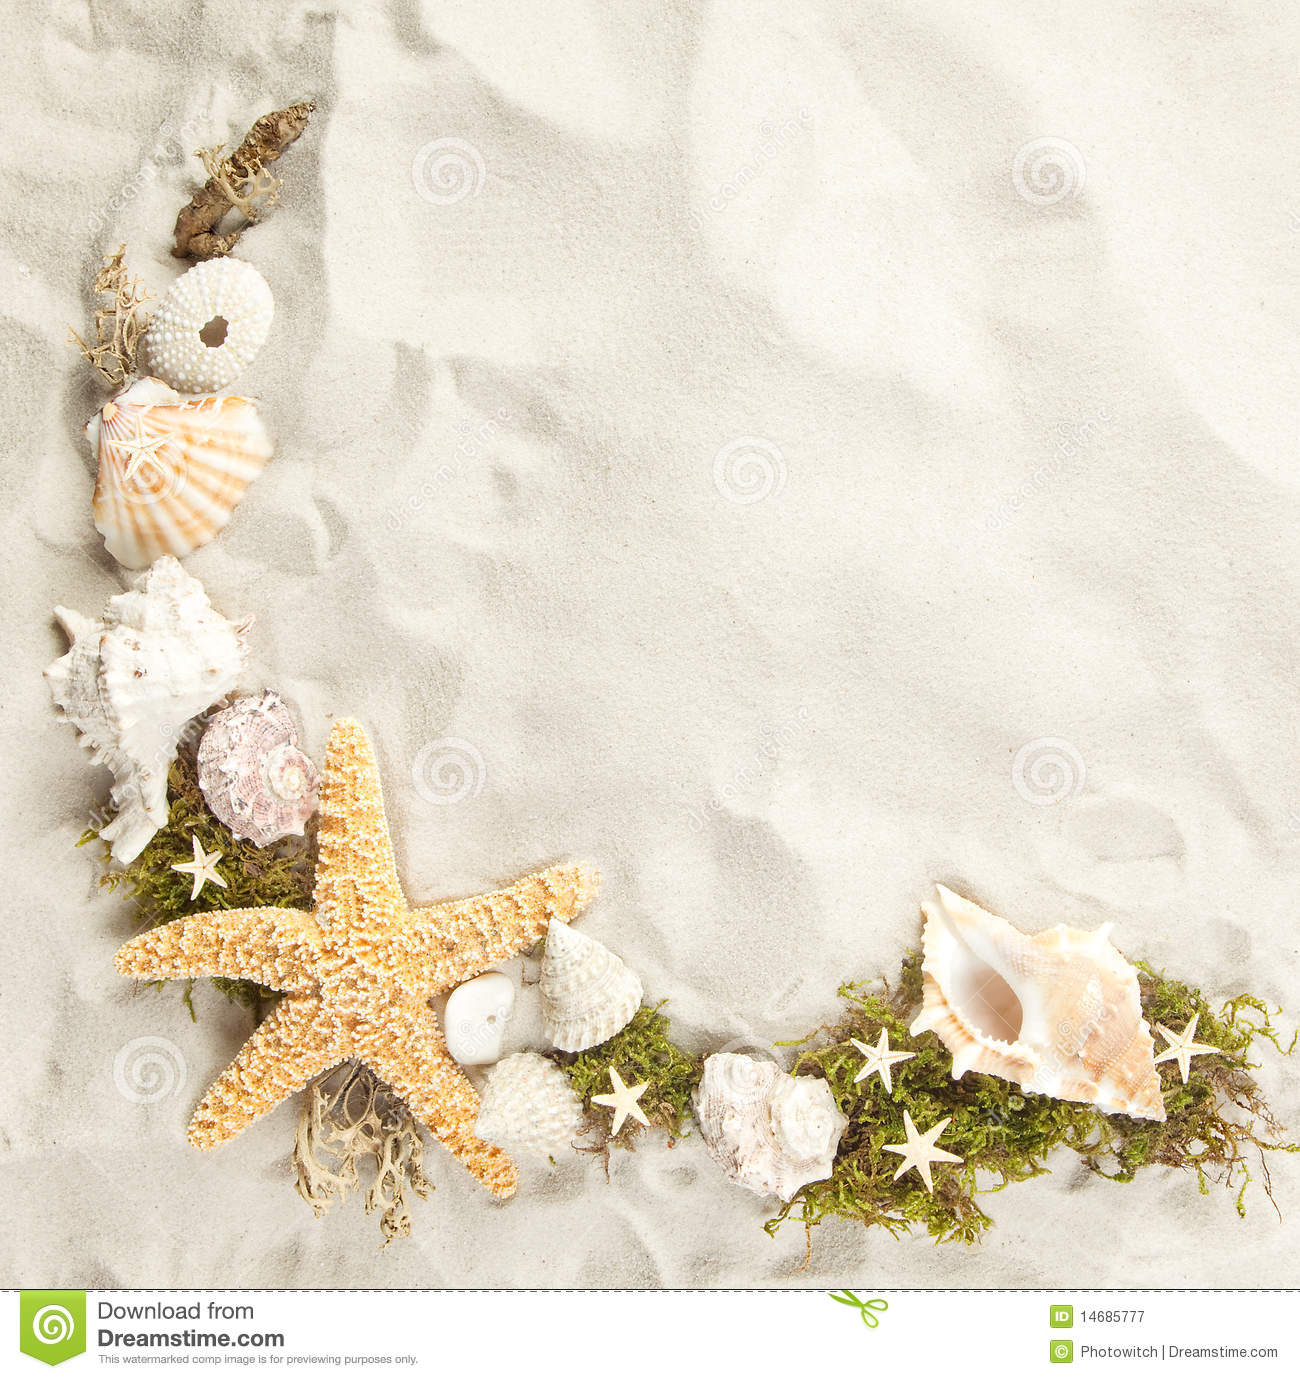 Shell Border Clip Art Border Of Seashells Royalty